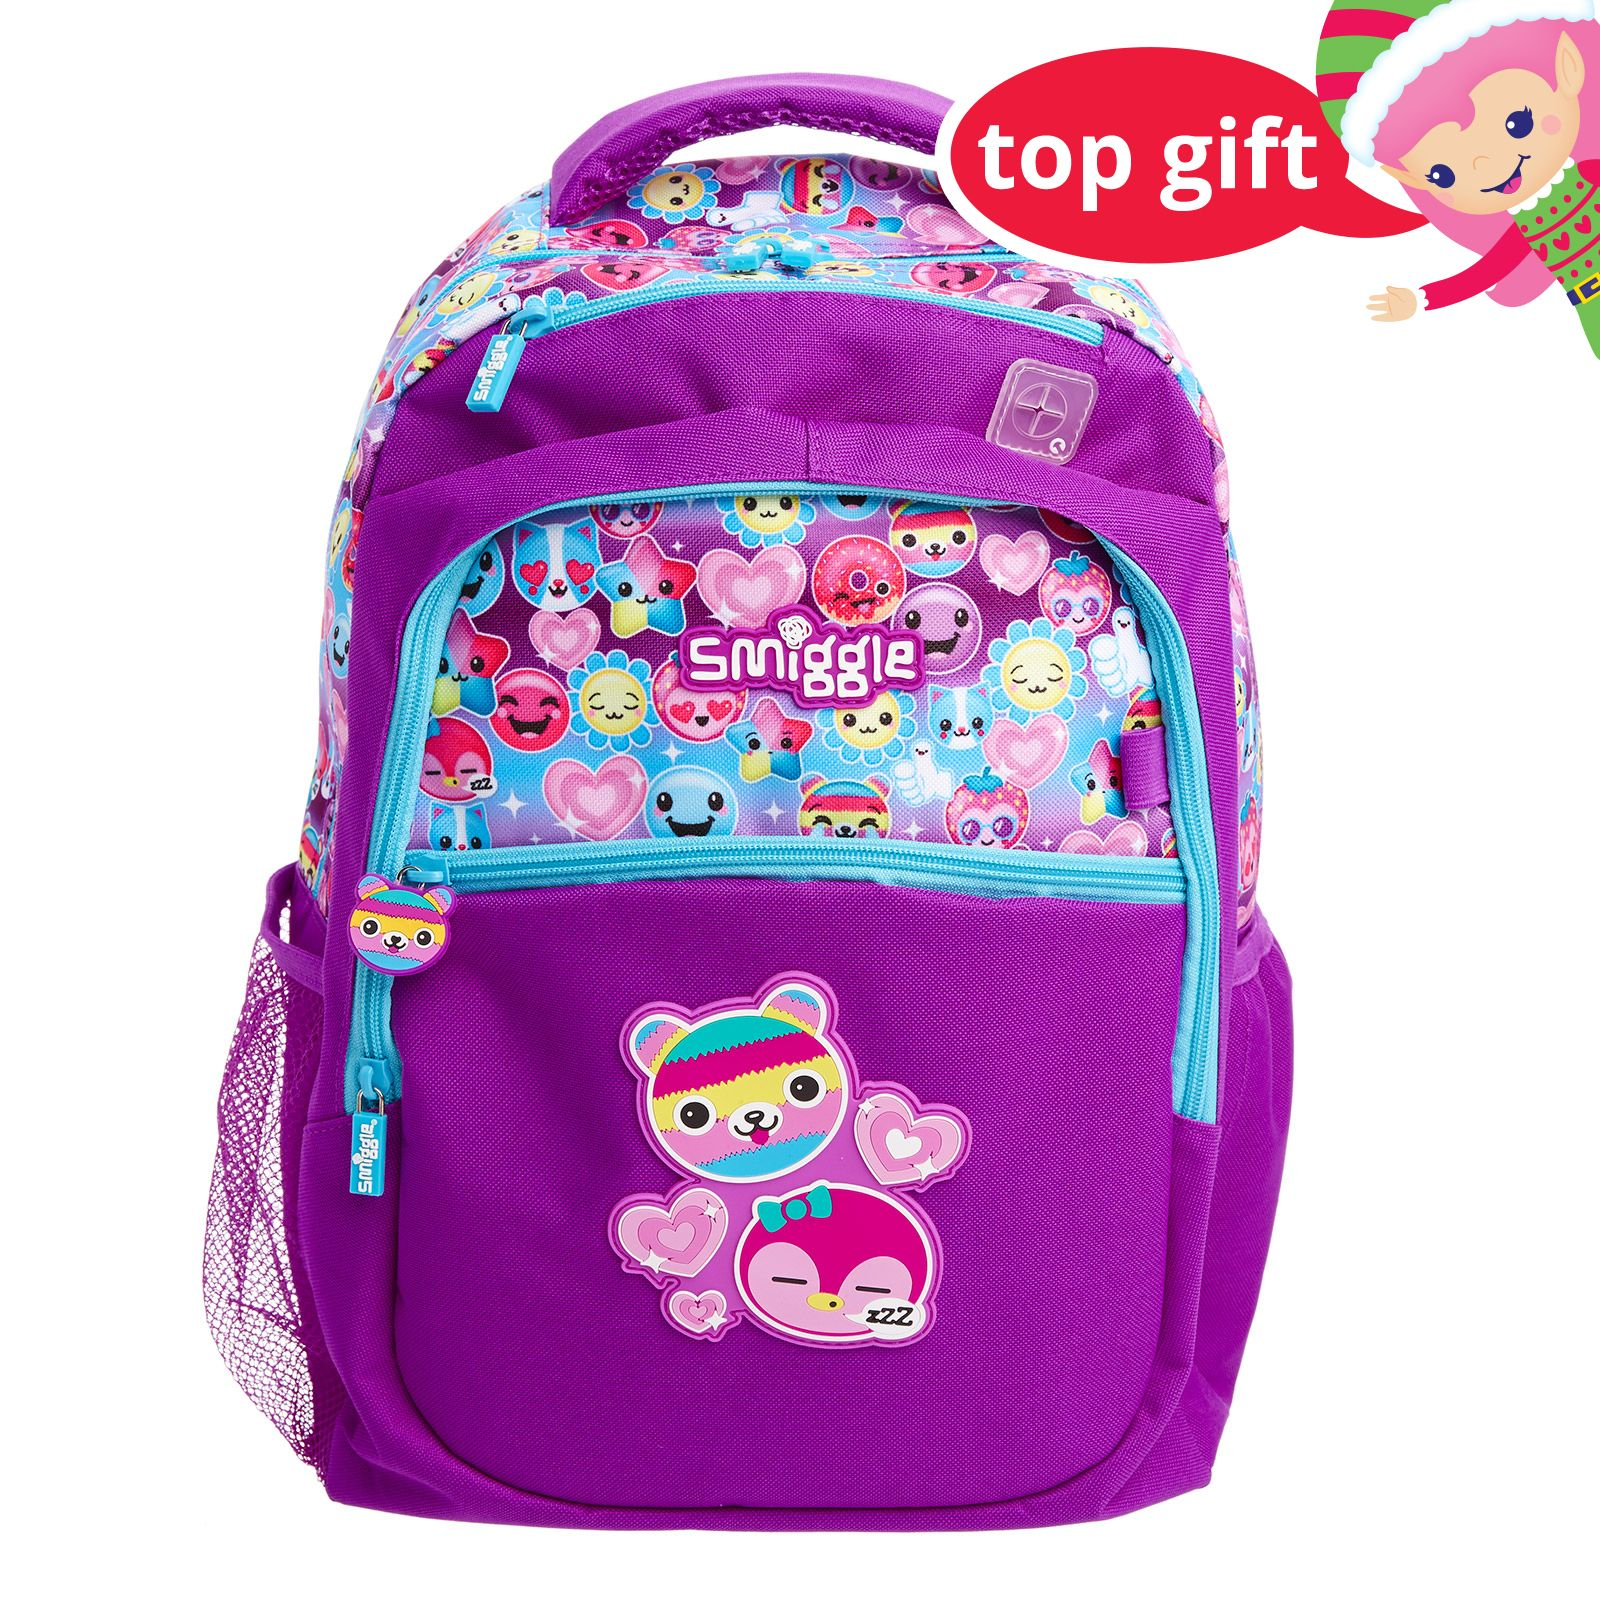 Smiggle Says double Glossy Trousse Violet